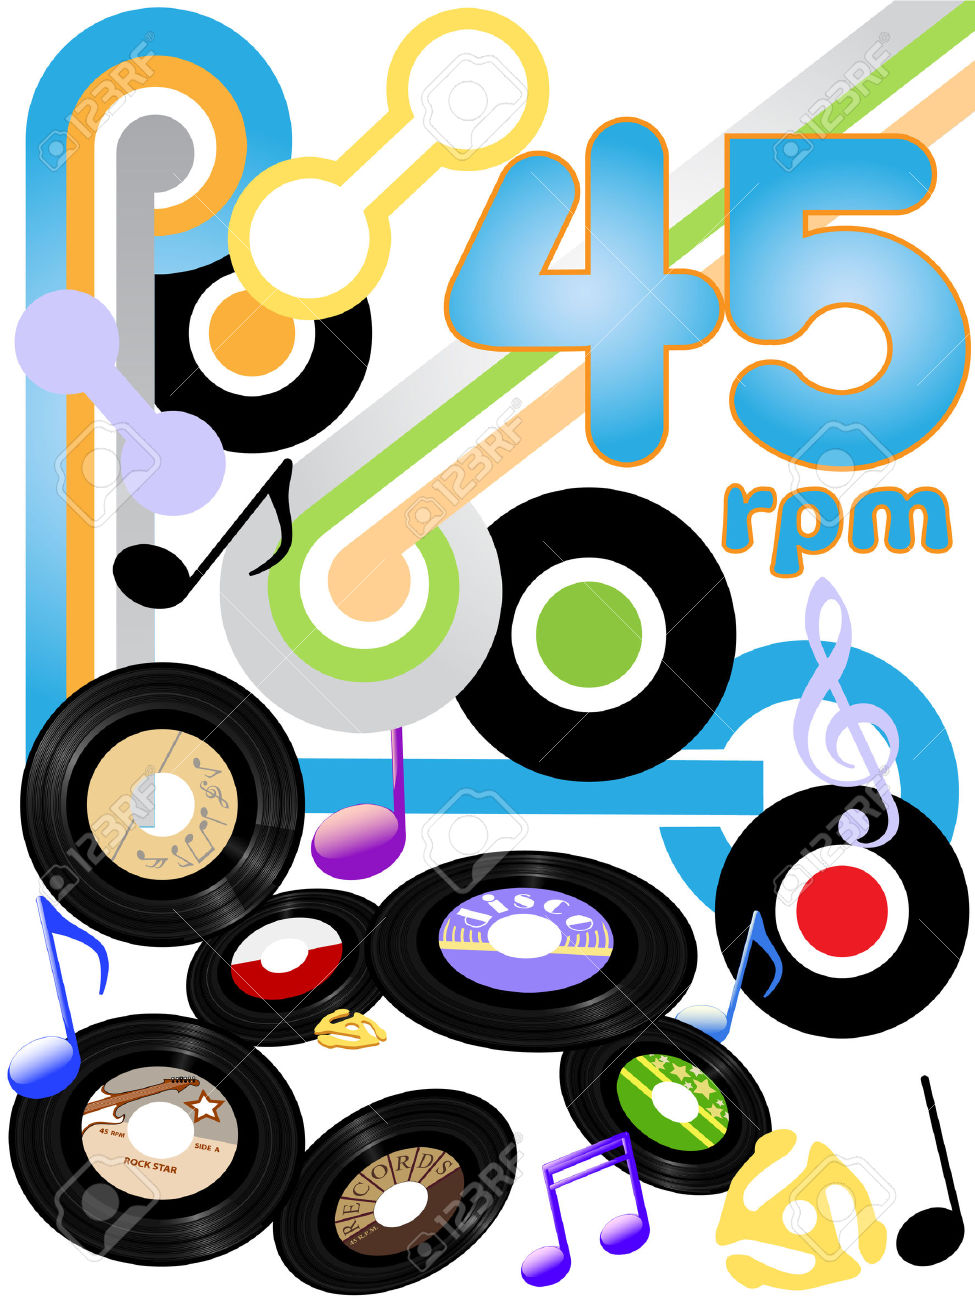 Classic Rock Solid Gold Oldies On 45 RPM Rock And Roll Music.